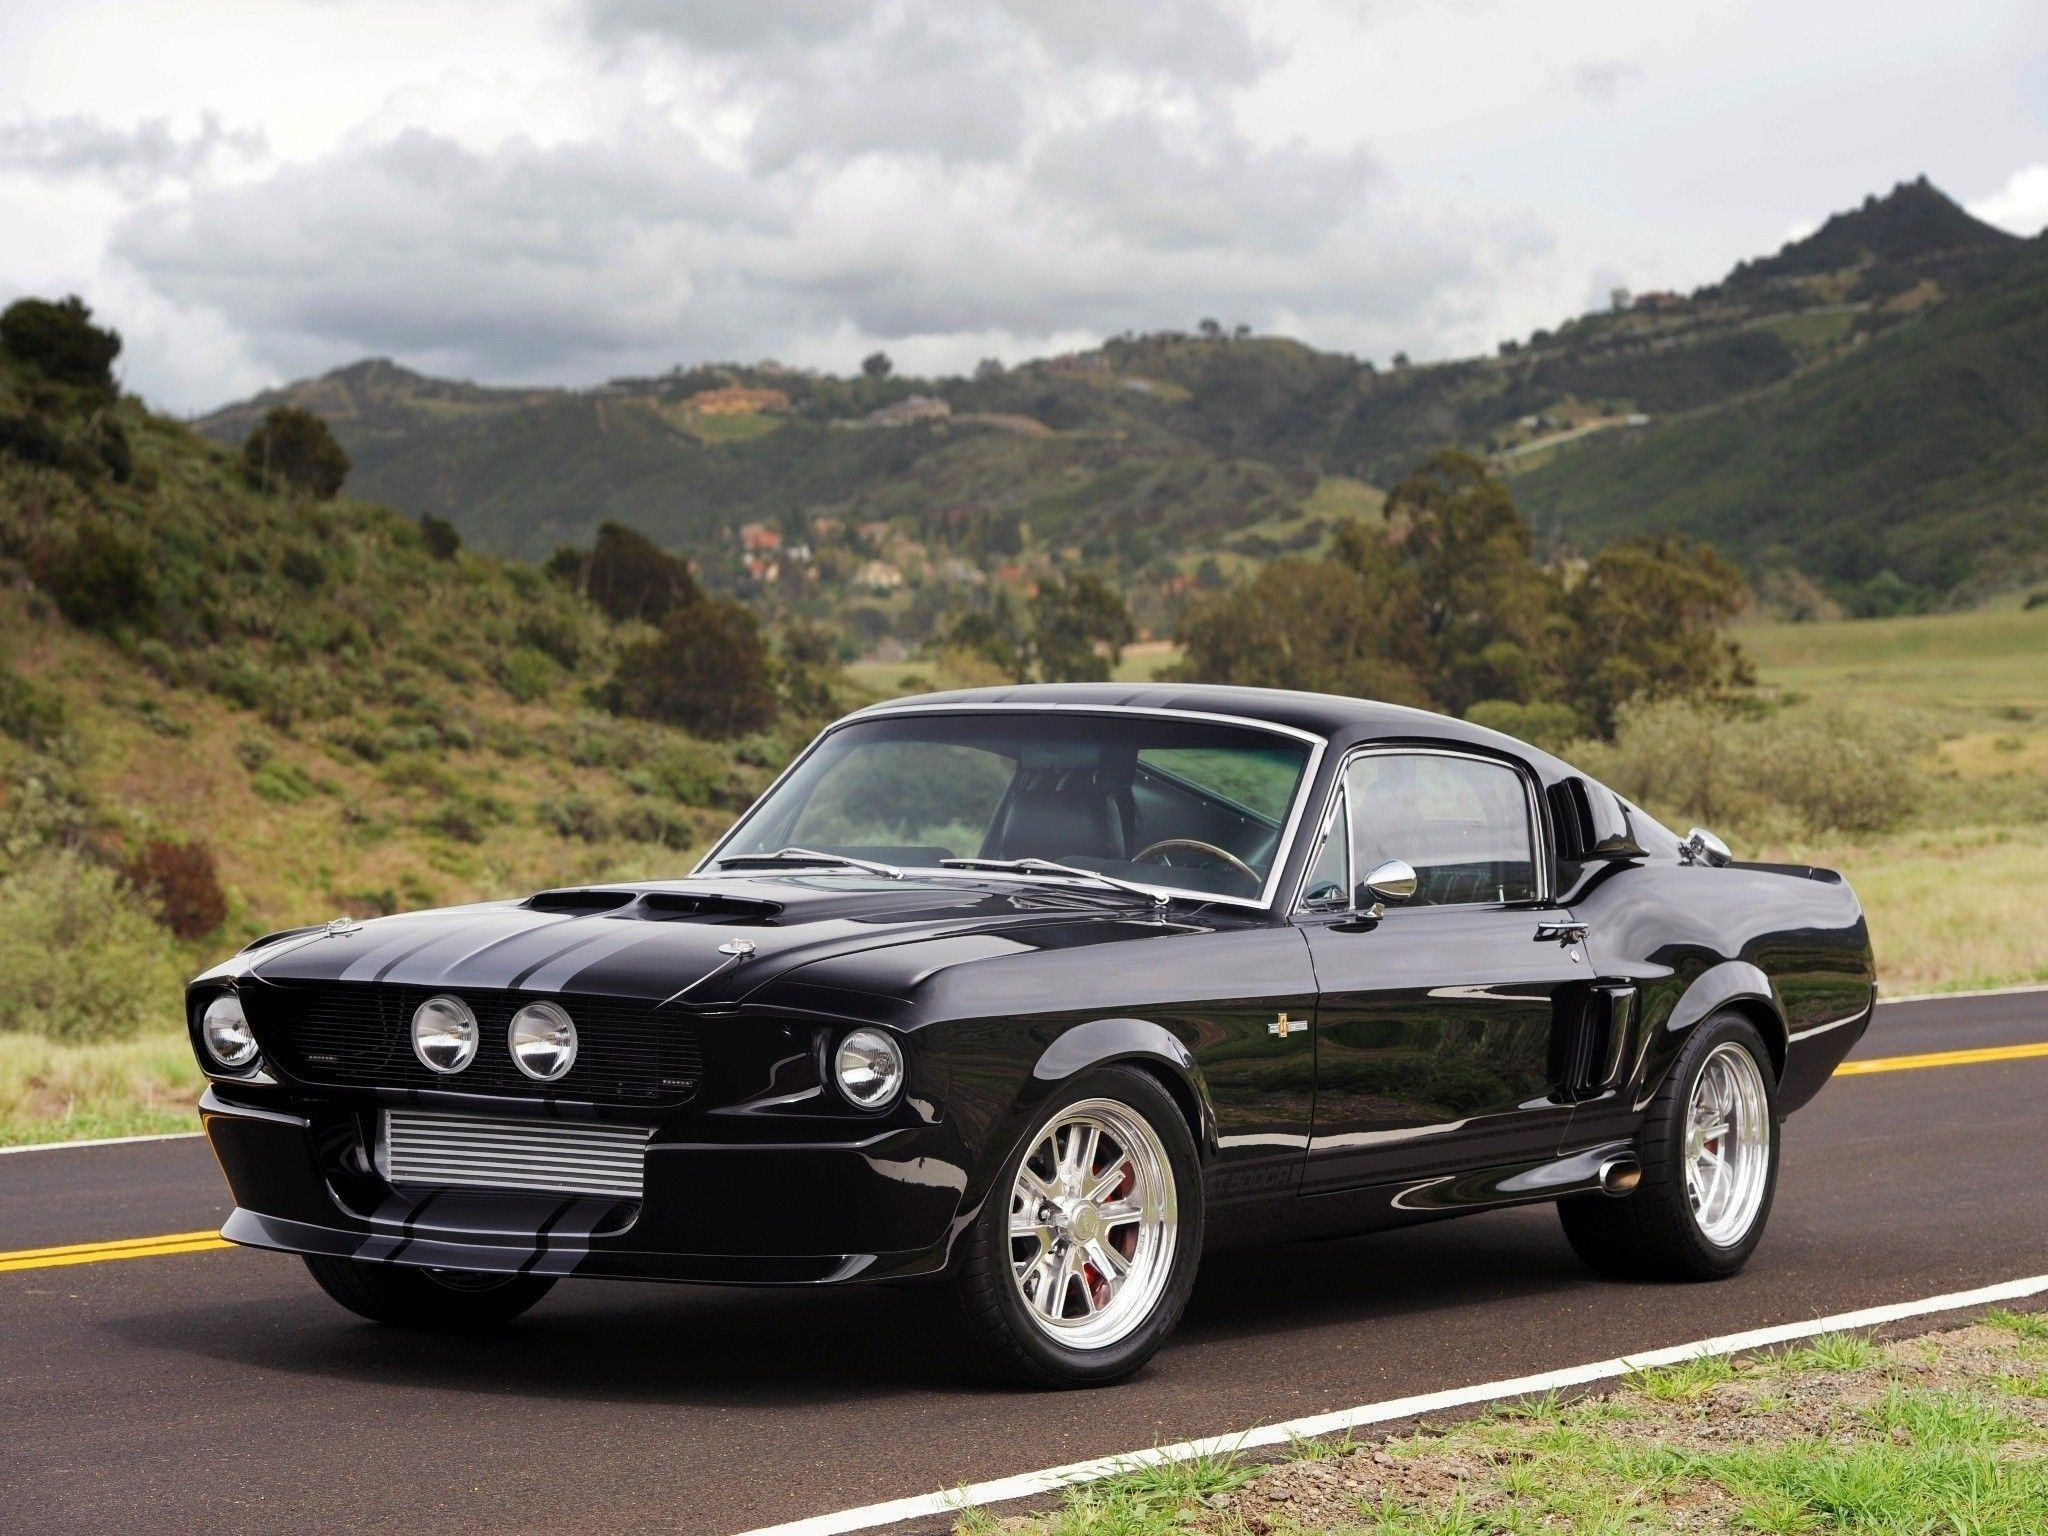 Classic Ford Mustang Shelby Gt500 Cars Vehicles 2048x1536 Ford Mustang Shelby Gt500 Car Ford Mustang Shelby Gt500 Ford Mustang Shelby Gt Mustang Fastback